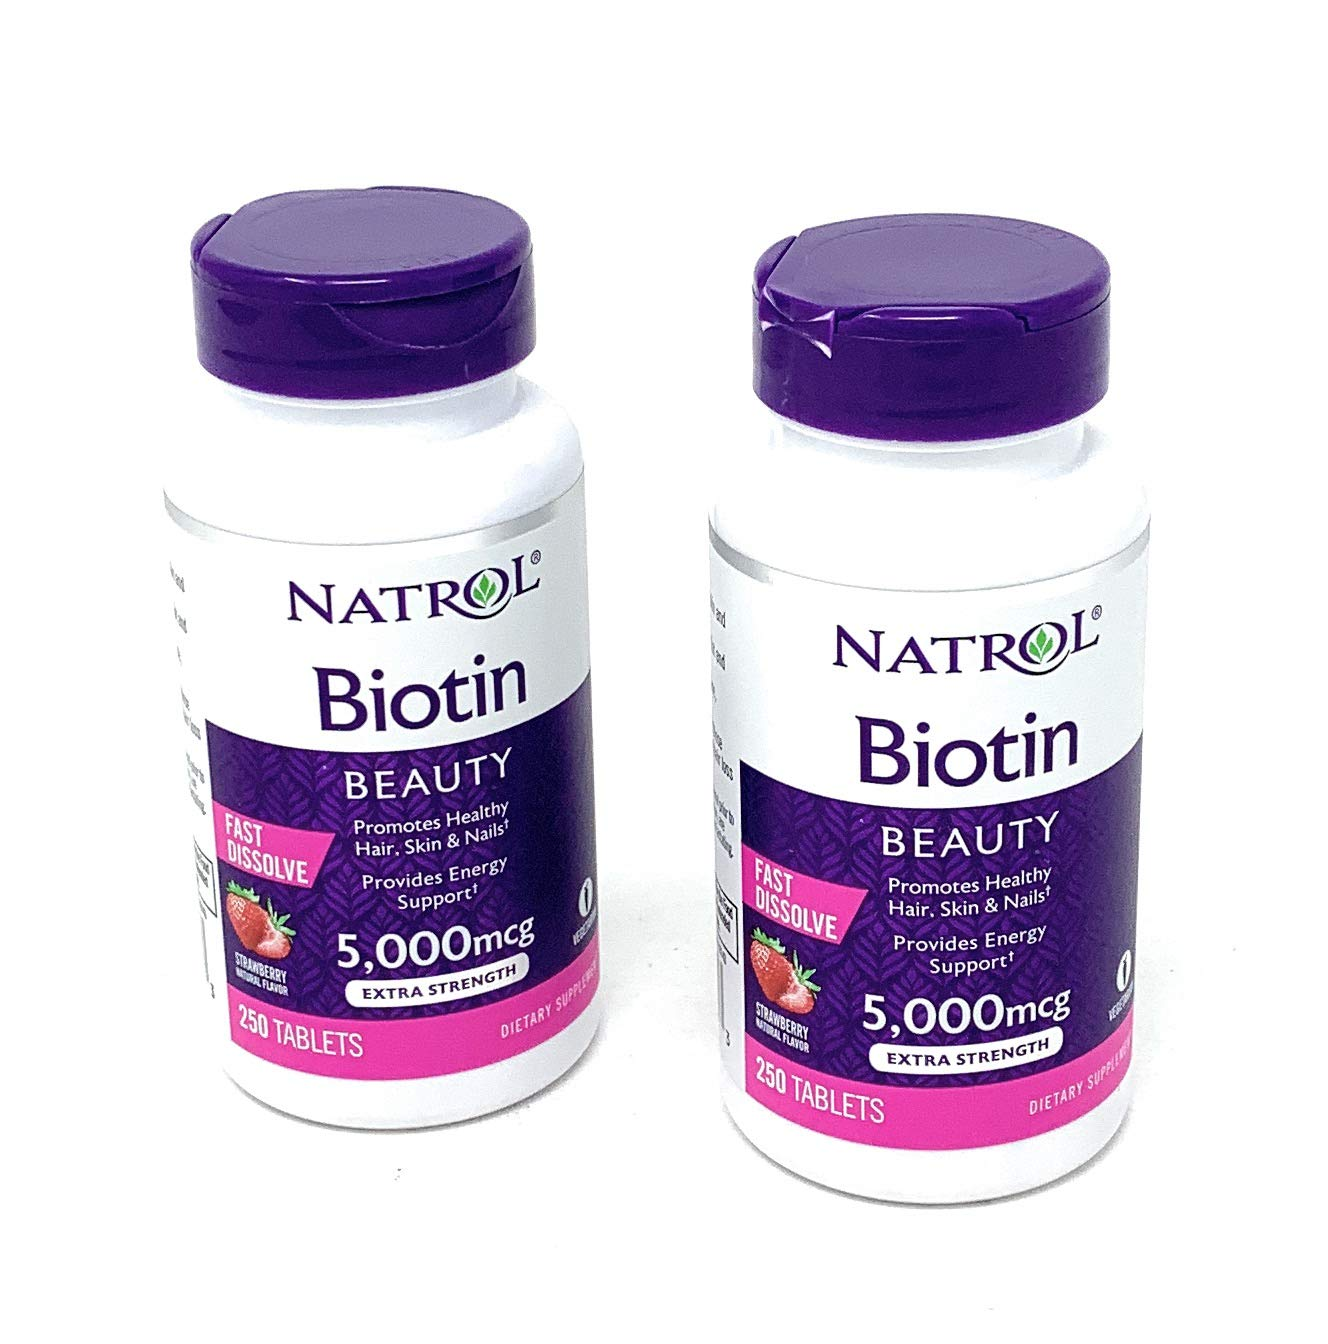 Natrol Biotin 5000 mcg Fast Dissolve Tablets Strawberry 2 Pack